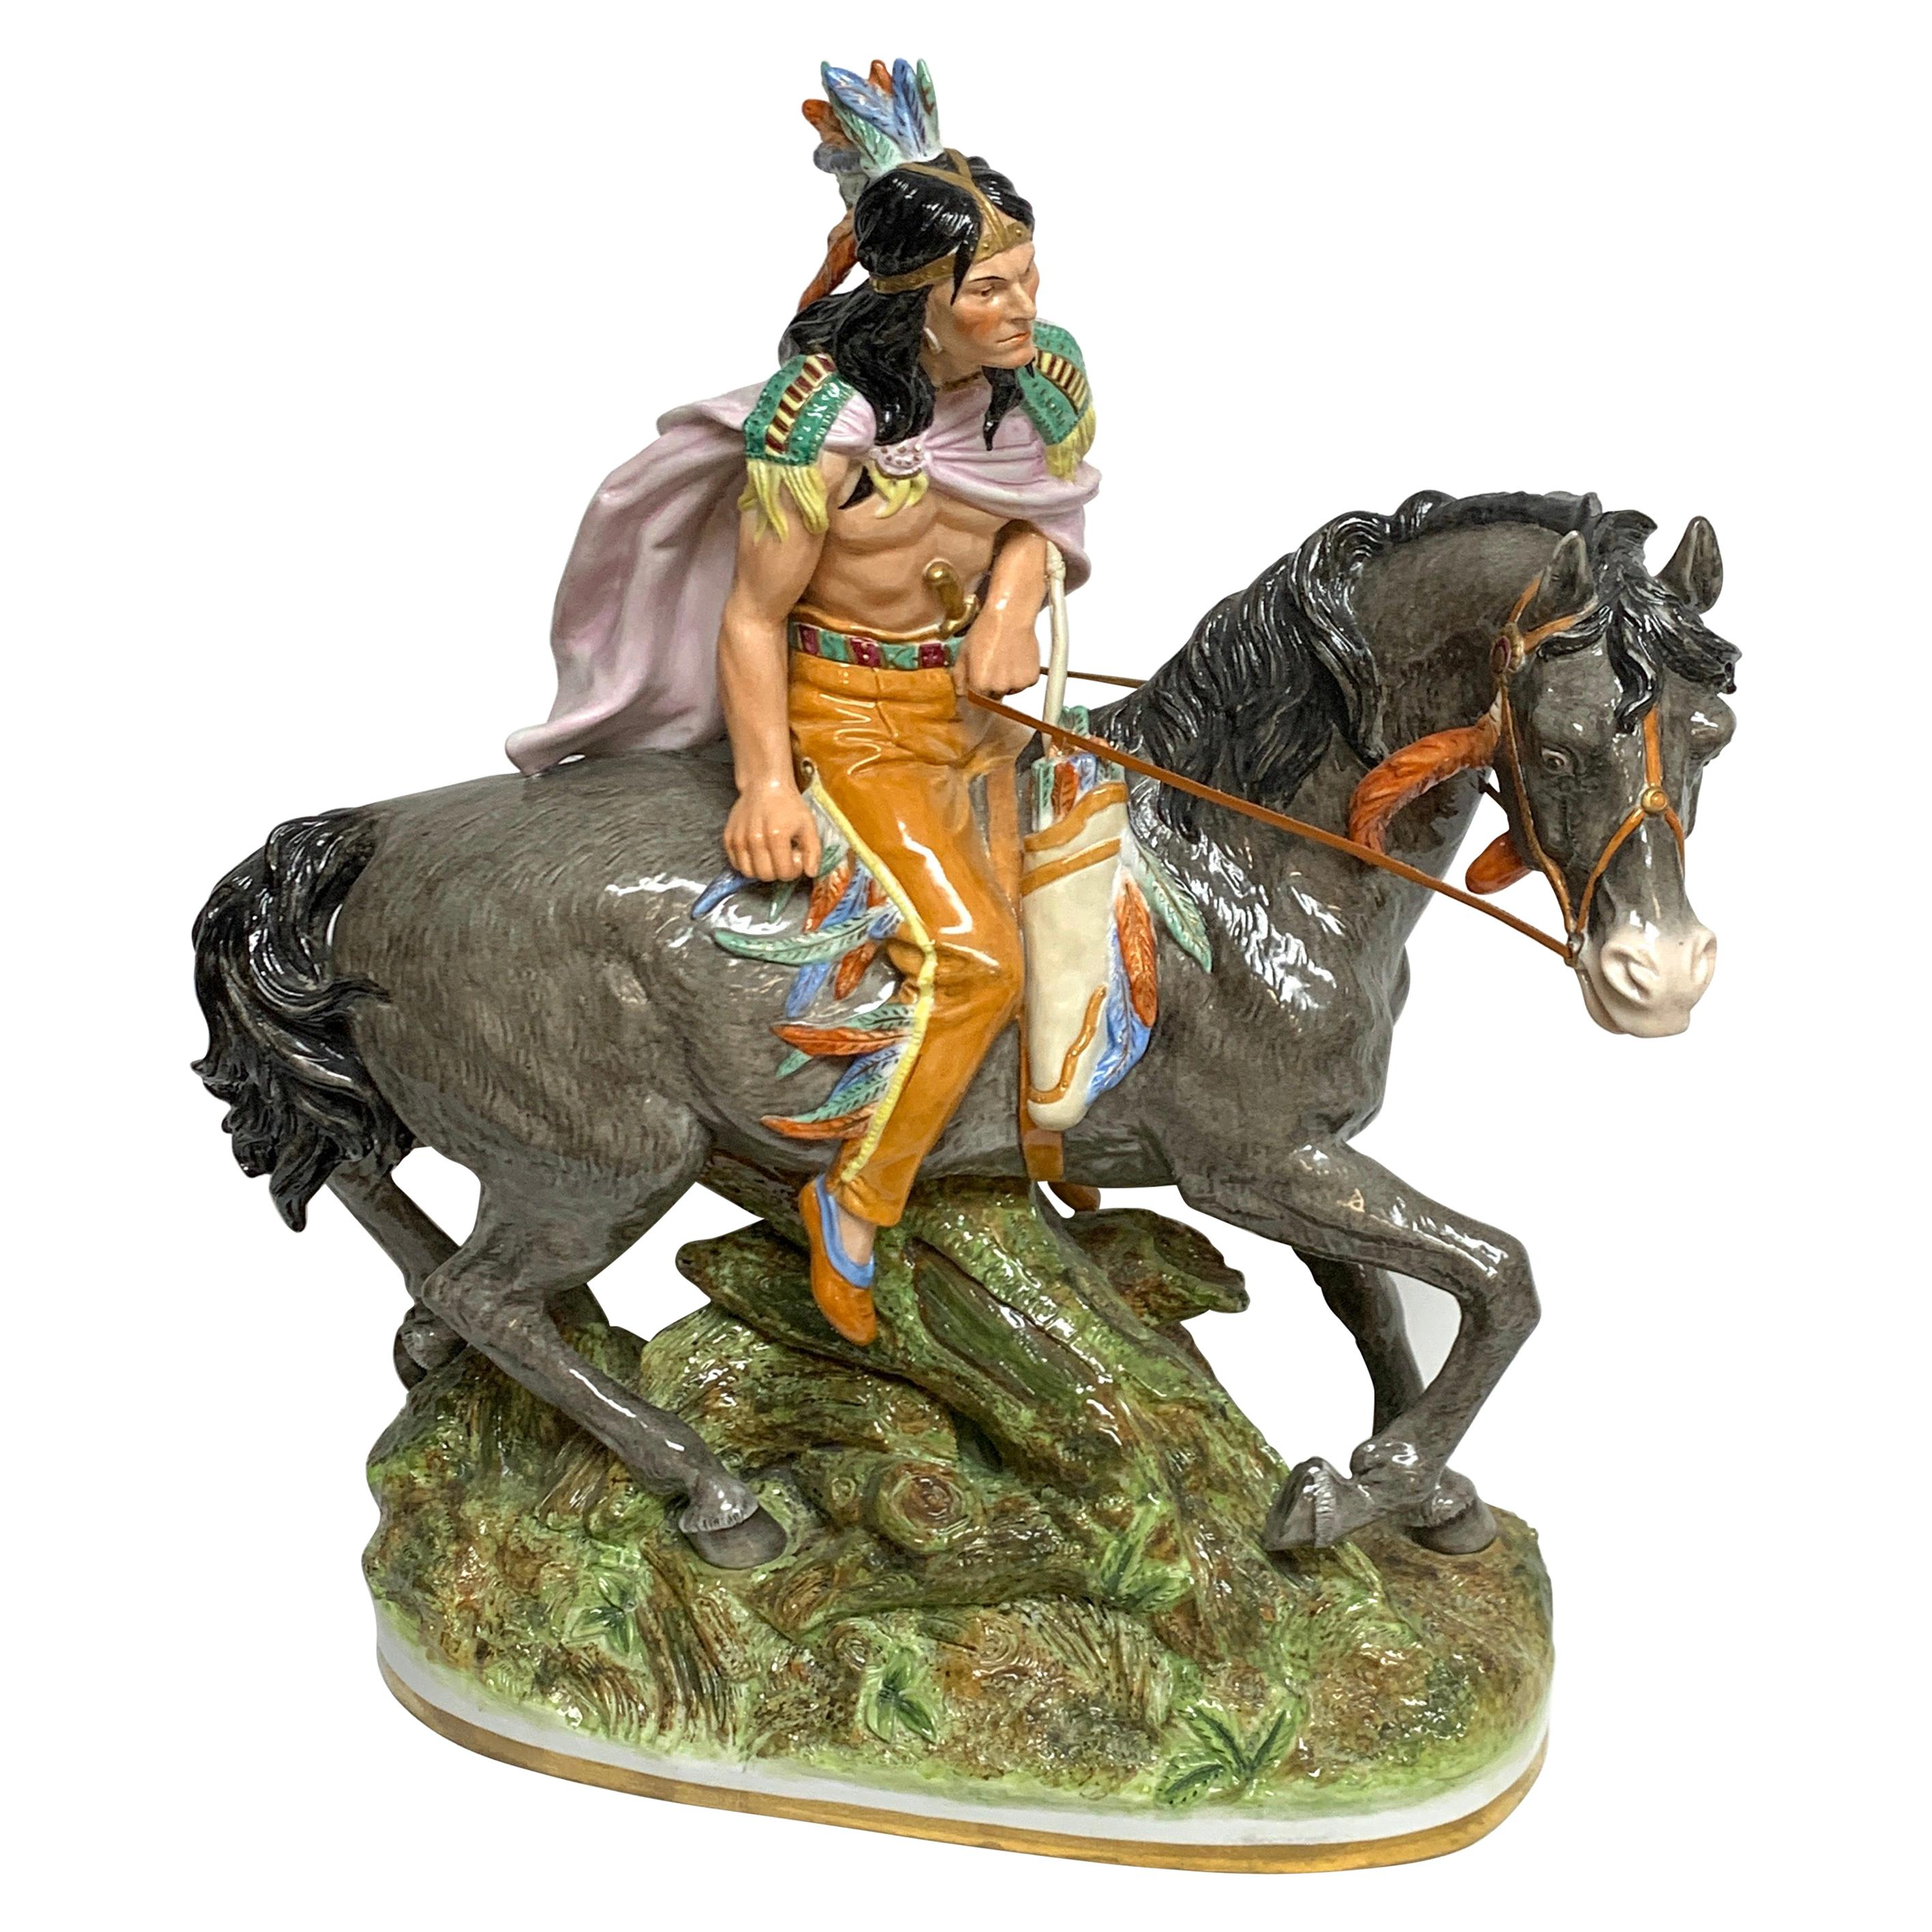 American Indian on Horseback, by Scheibe Alsbach / Volkstedt Porcelain